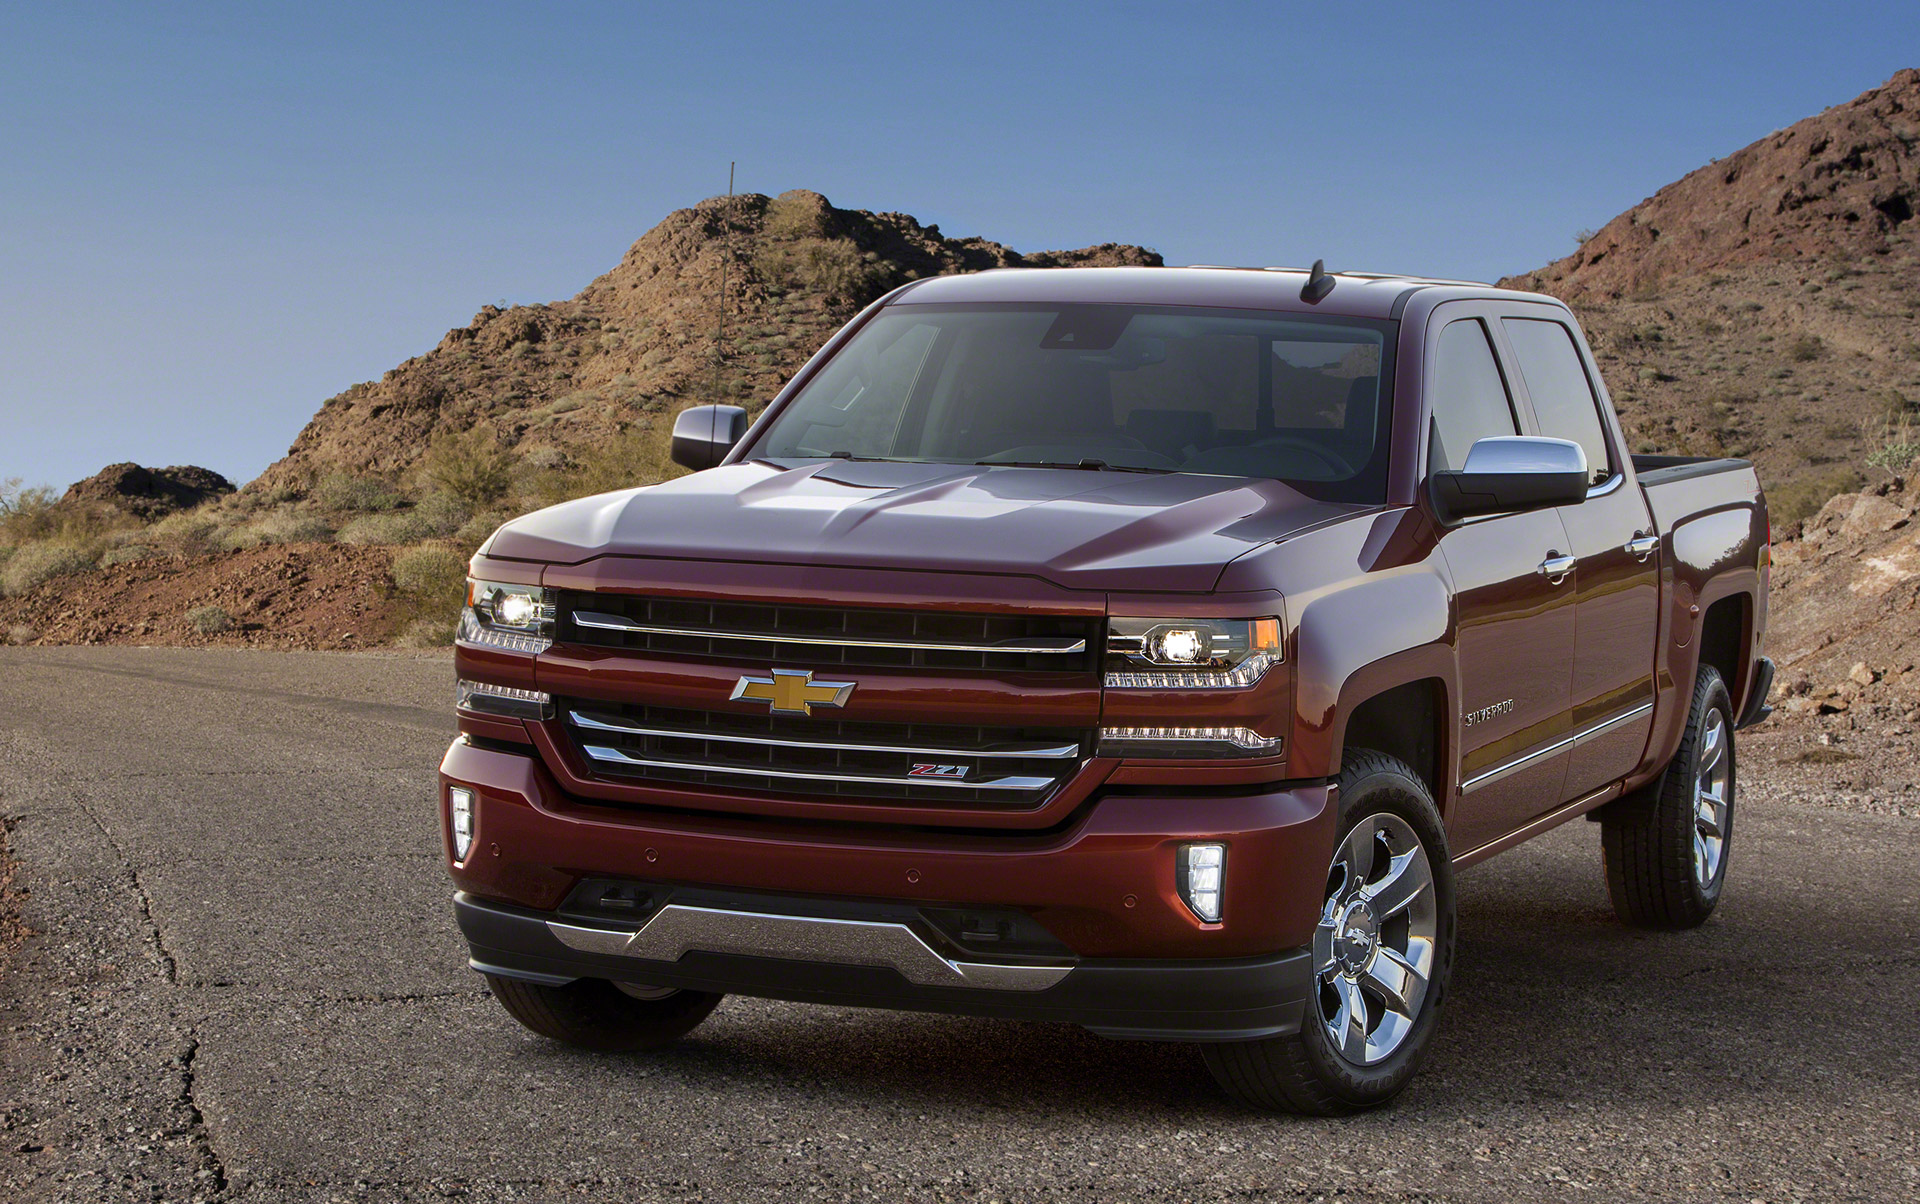 Audi 0 60 >> 2016 Chevrolet Silverado 1500 Gets Sporty New Look, More Tech